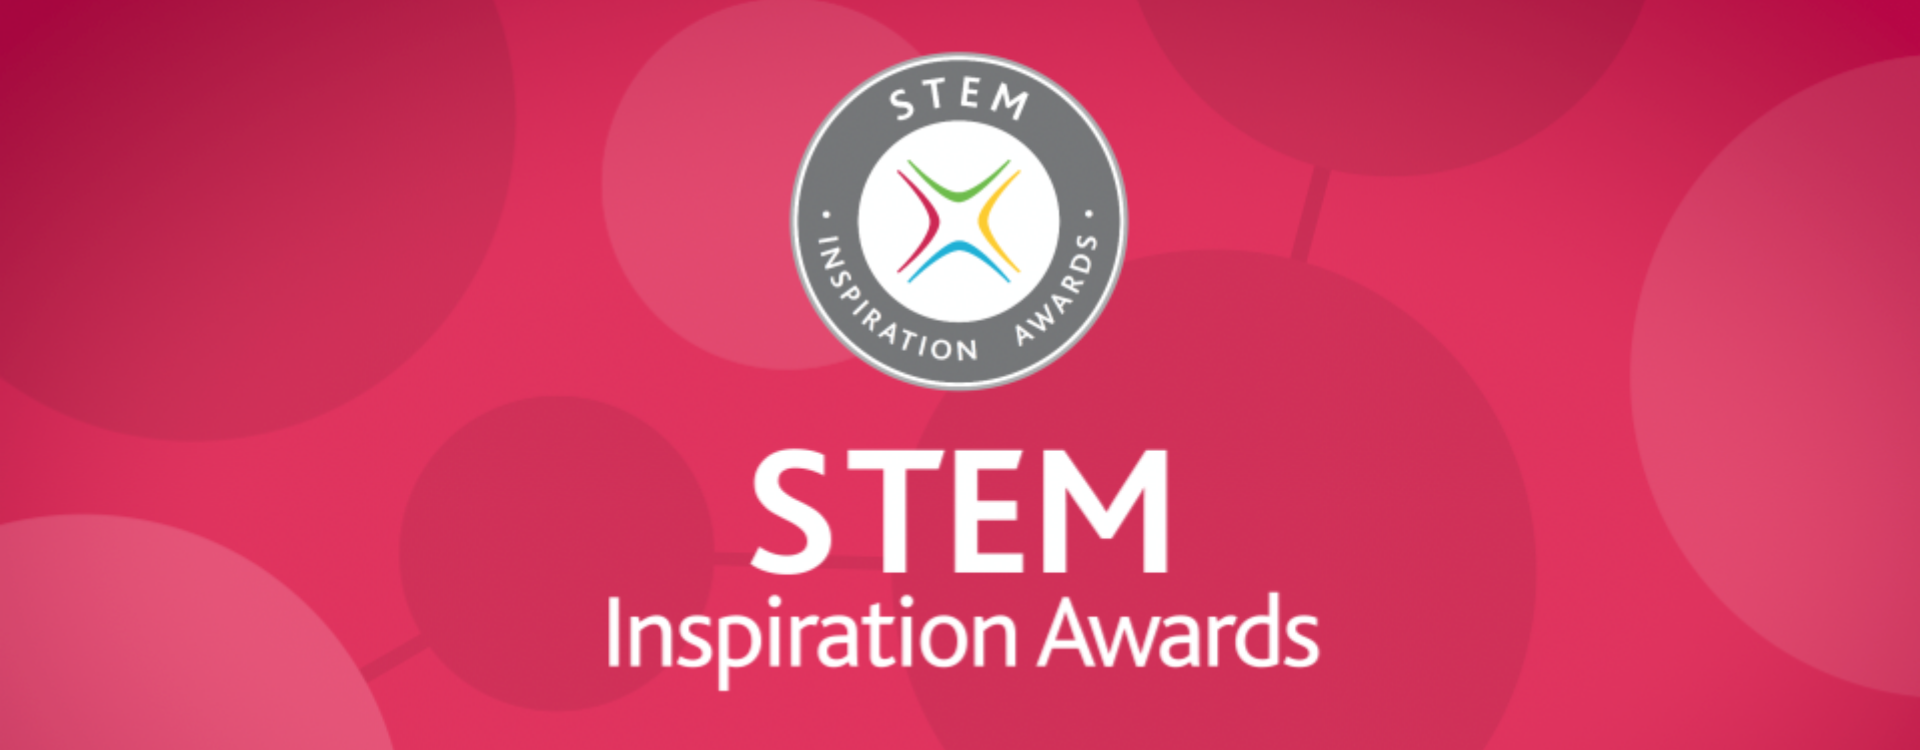 STEM Inspiration Awards